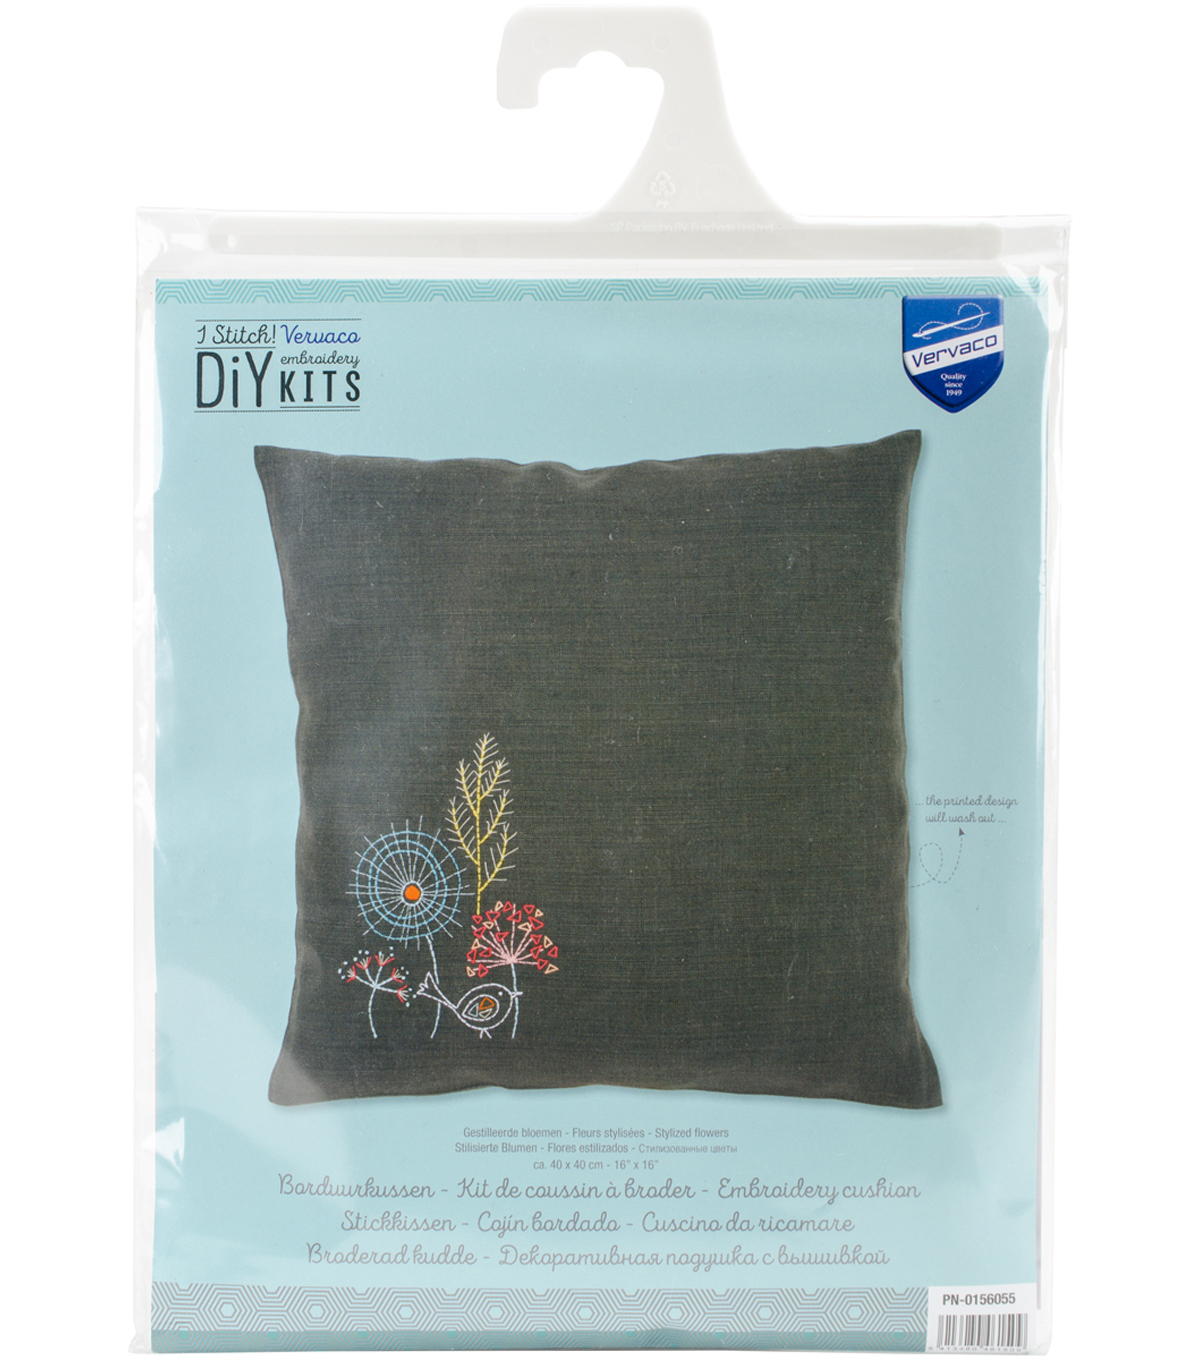 Vervaco 16\u0027\u0027x16\u0027\u0027 Stamped Embroidery Cushion Kit-Stylized Flowers IV